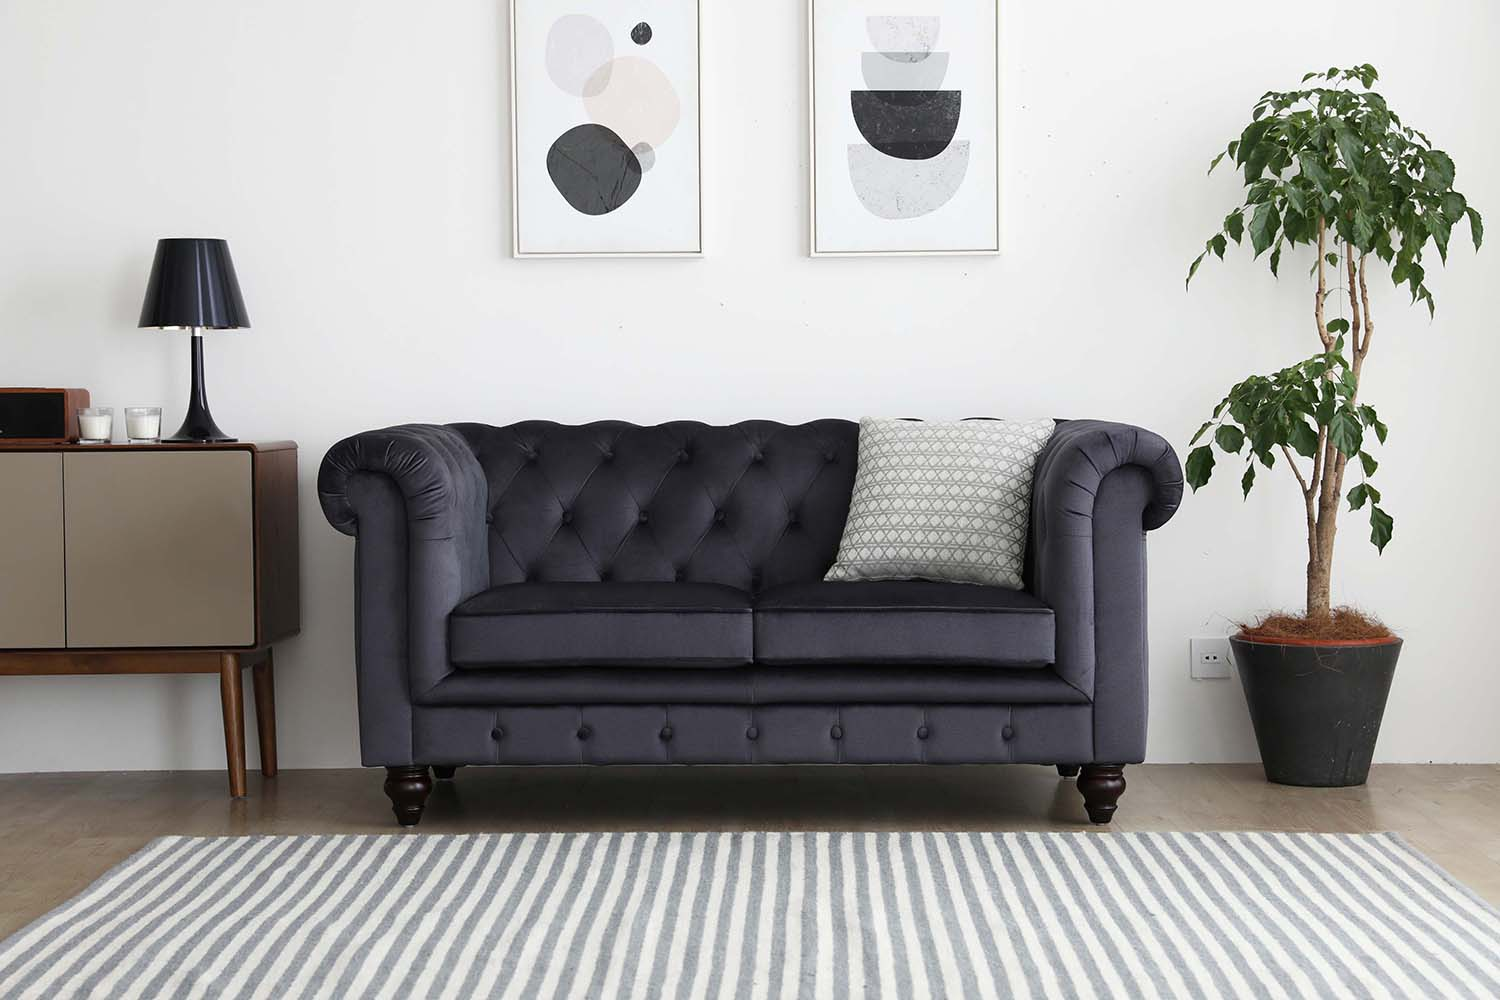 07e955548a08 Popular since their origination in the mid 18th century, it's easy to know  why the chesterfield sofas are an enduring design.